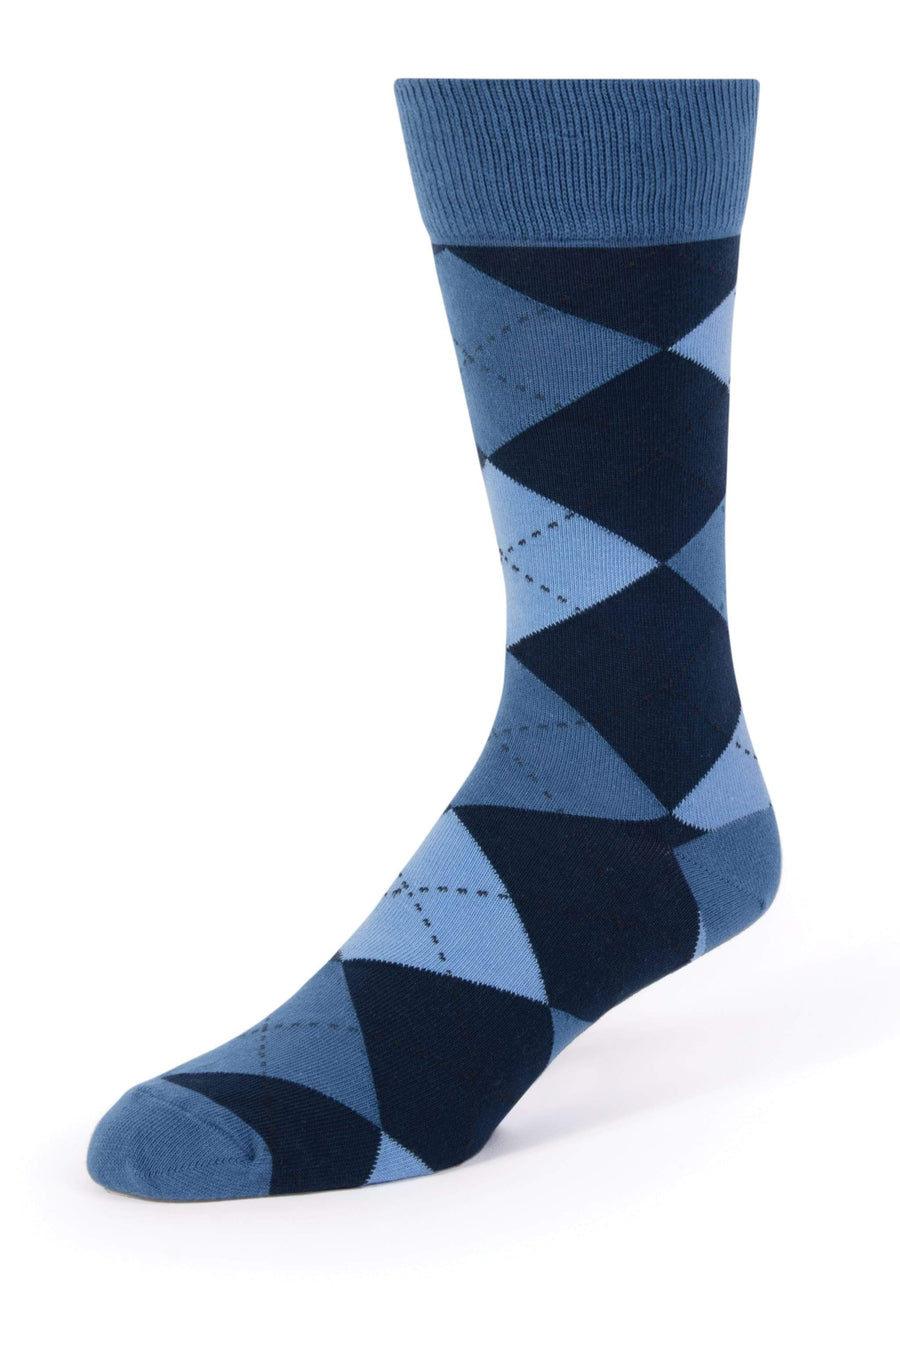 Navy Argyle Men's Dress Socks